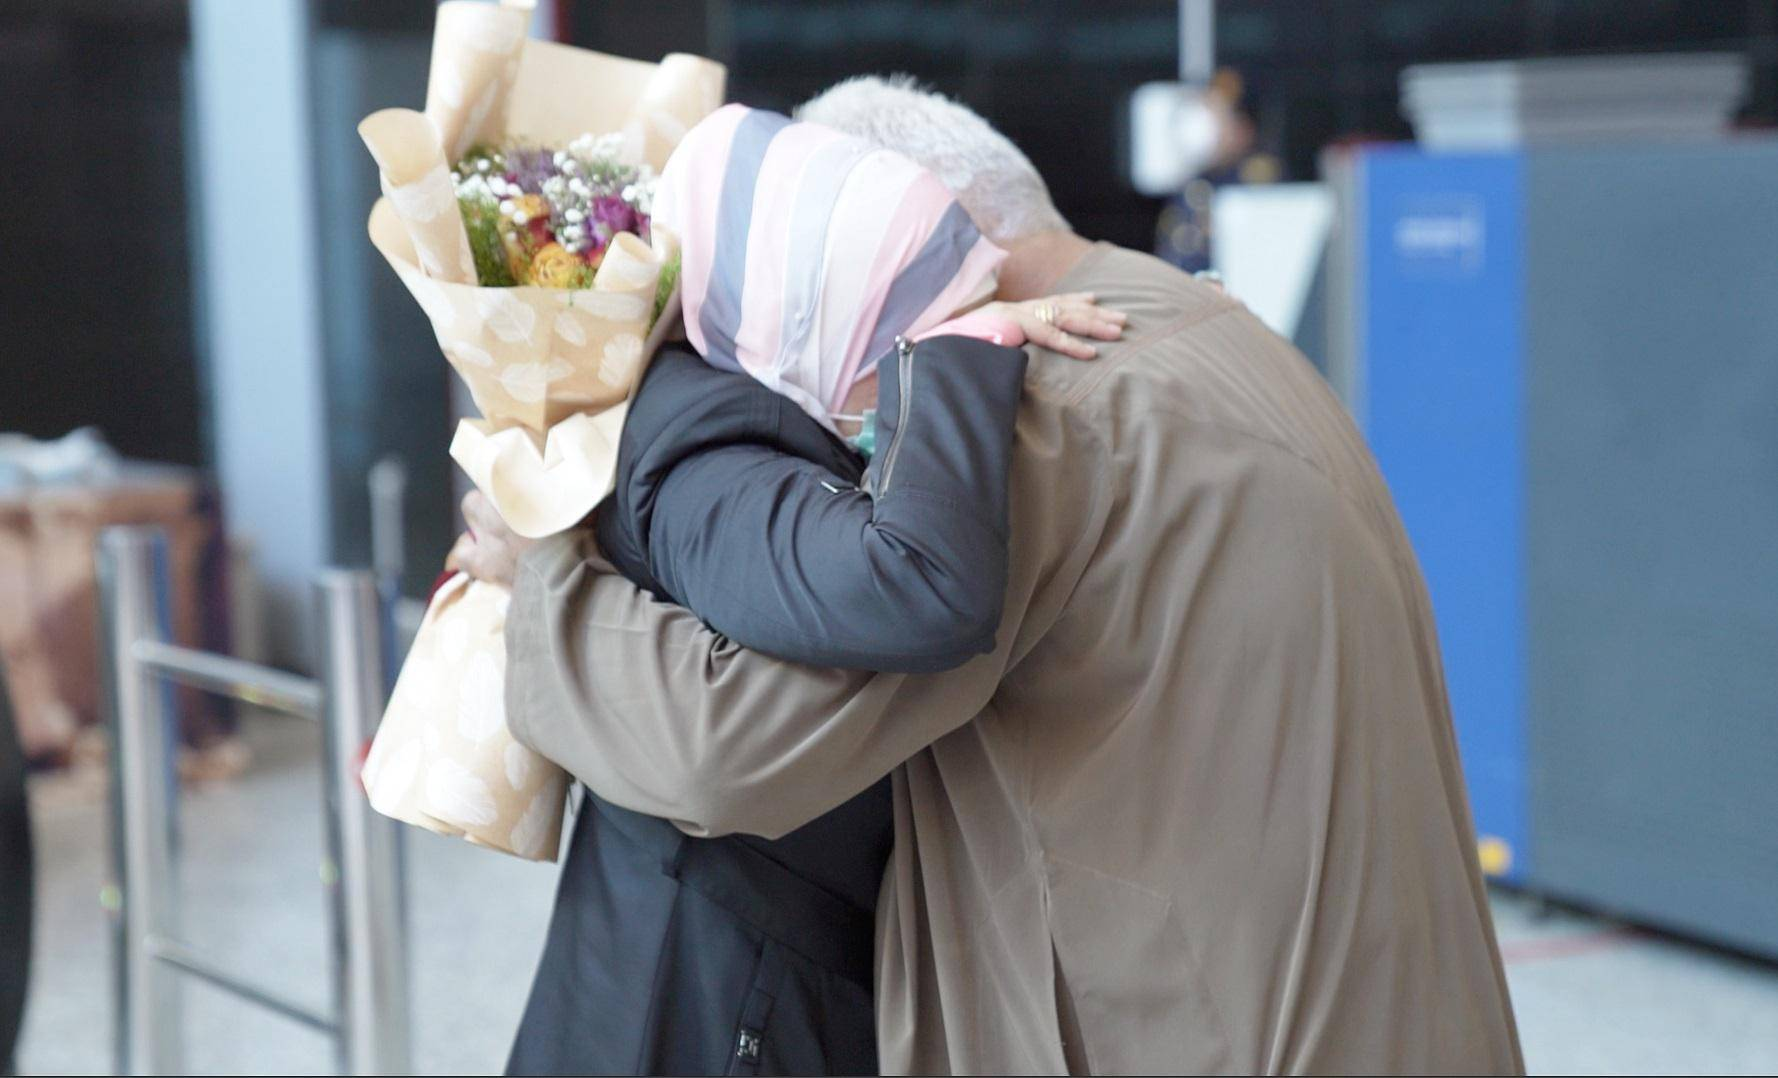 UAE: Police reunite couple separated for seven years